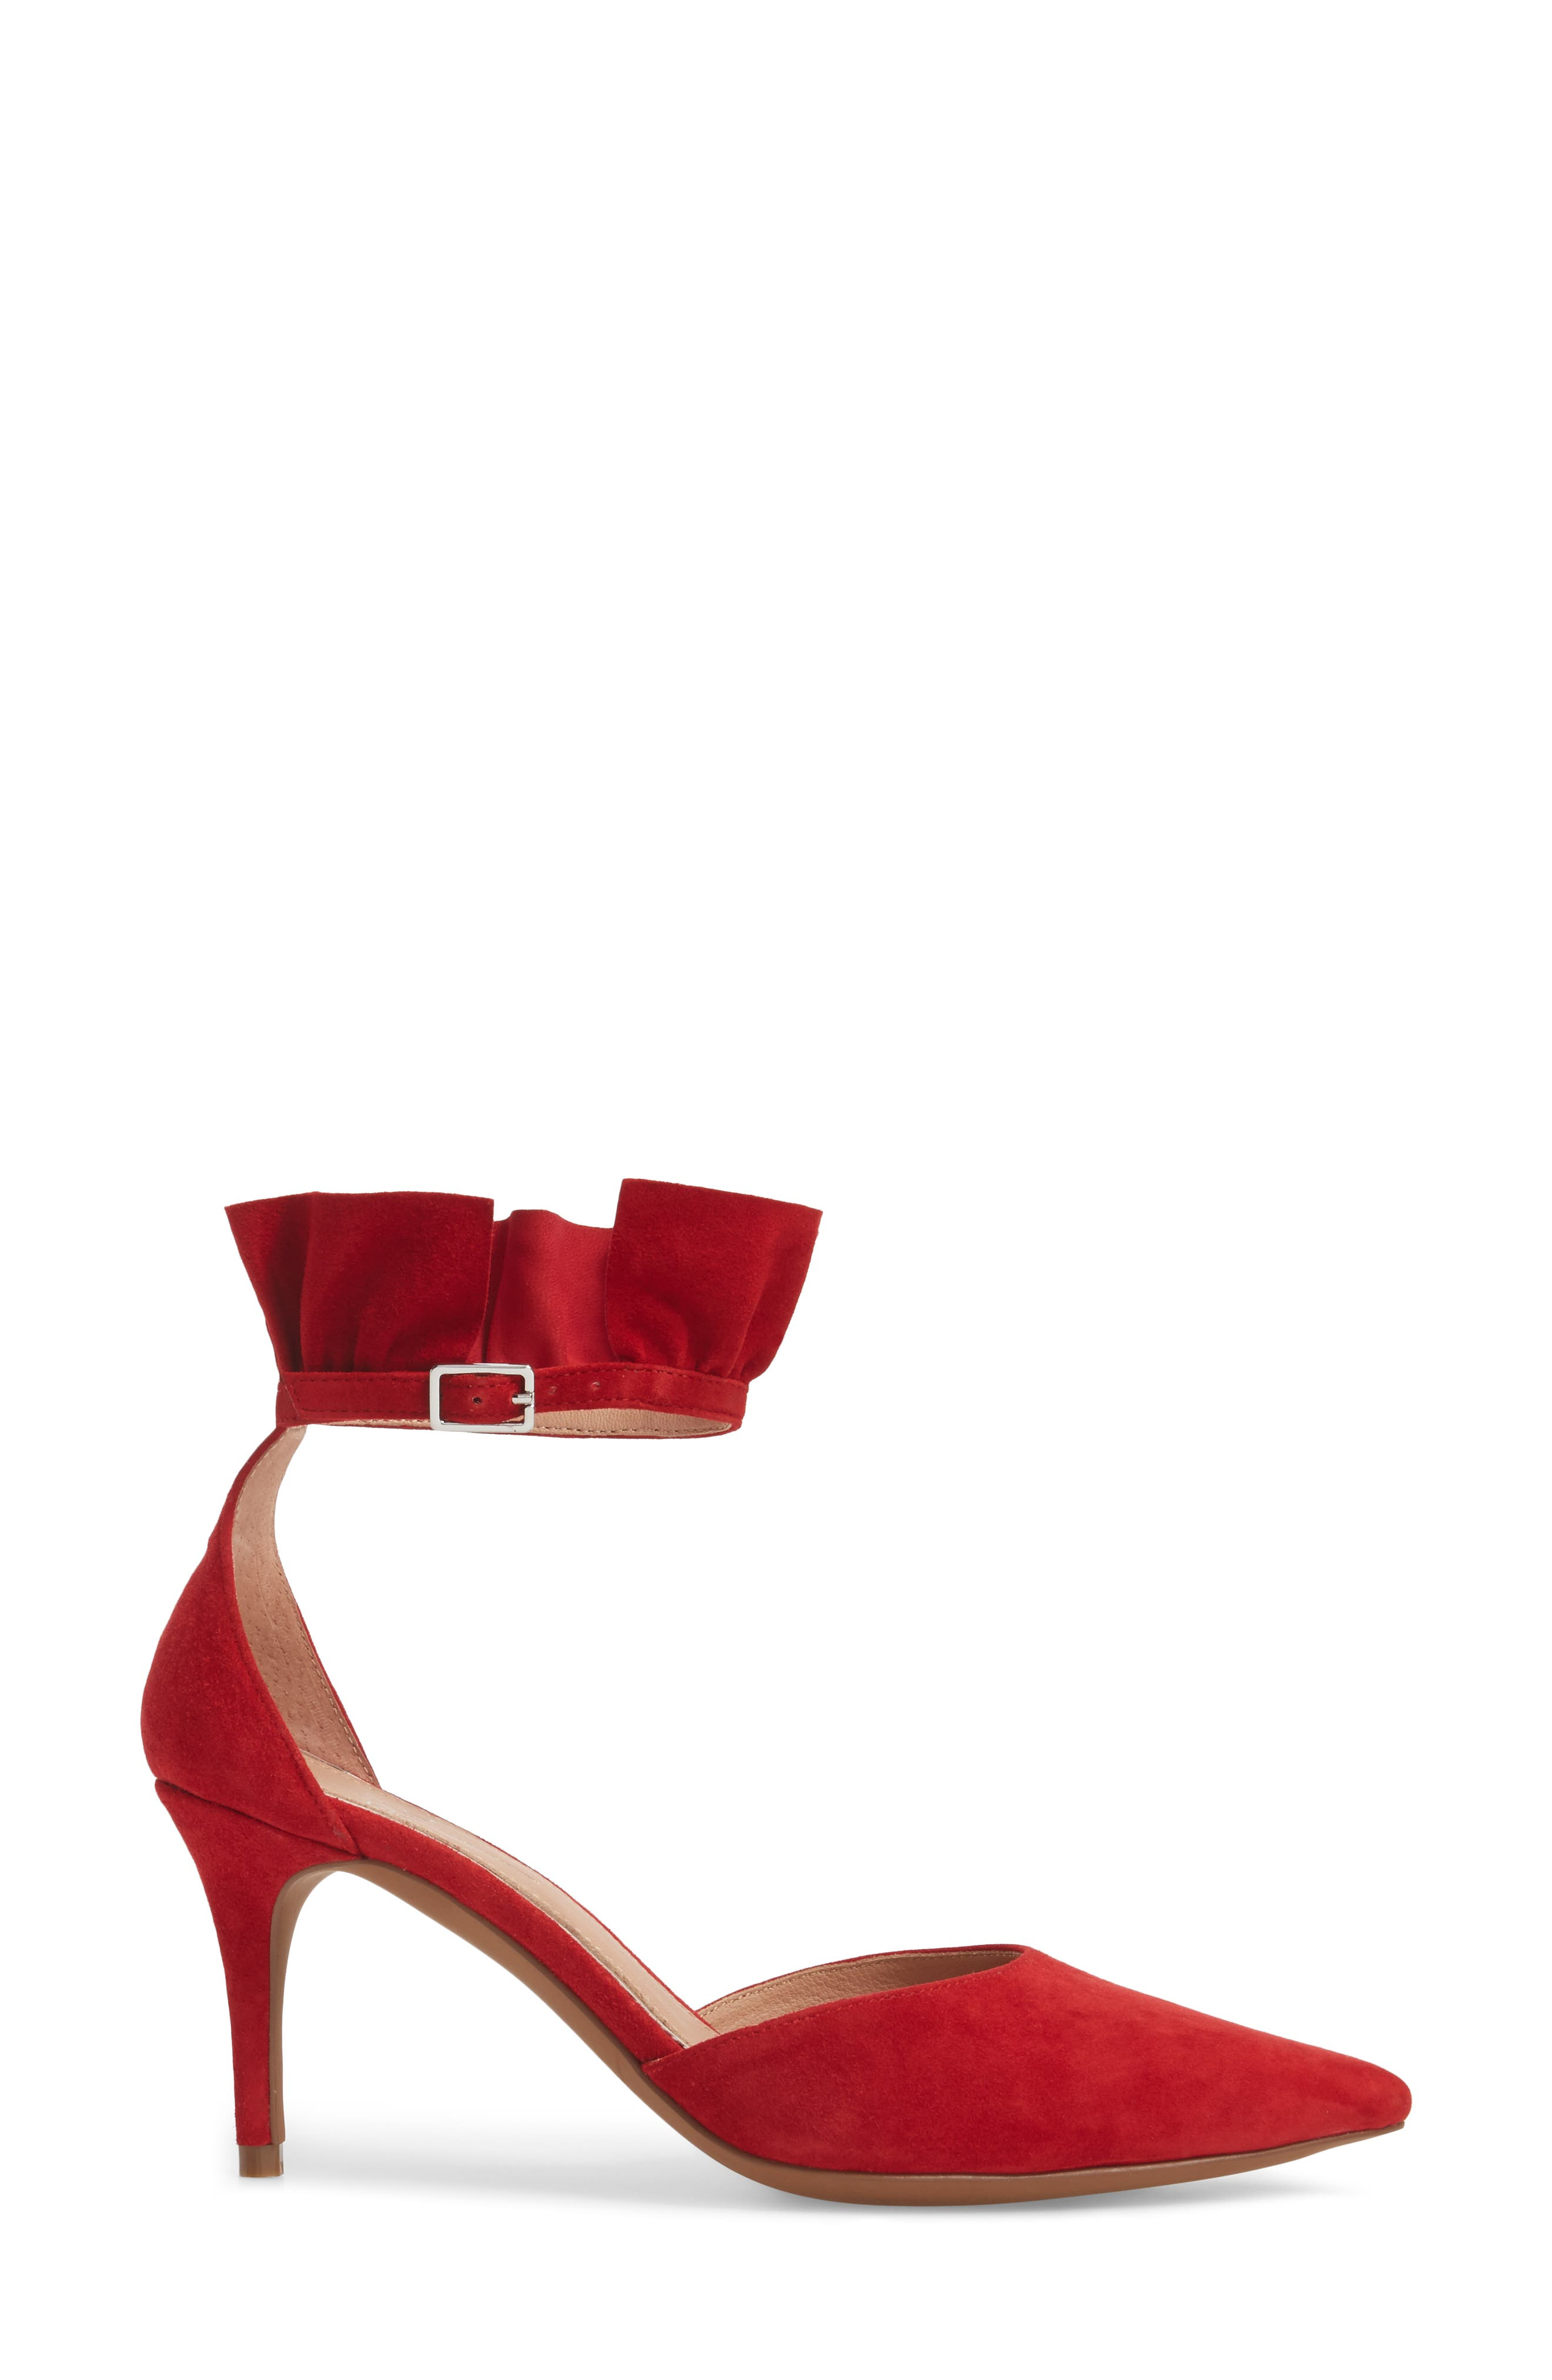 Pammy Ruffled Pointy Toe Pump,                             Alternate thumbnail 3, color,                             Red Suede